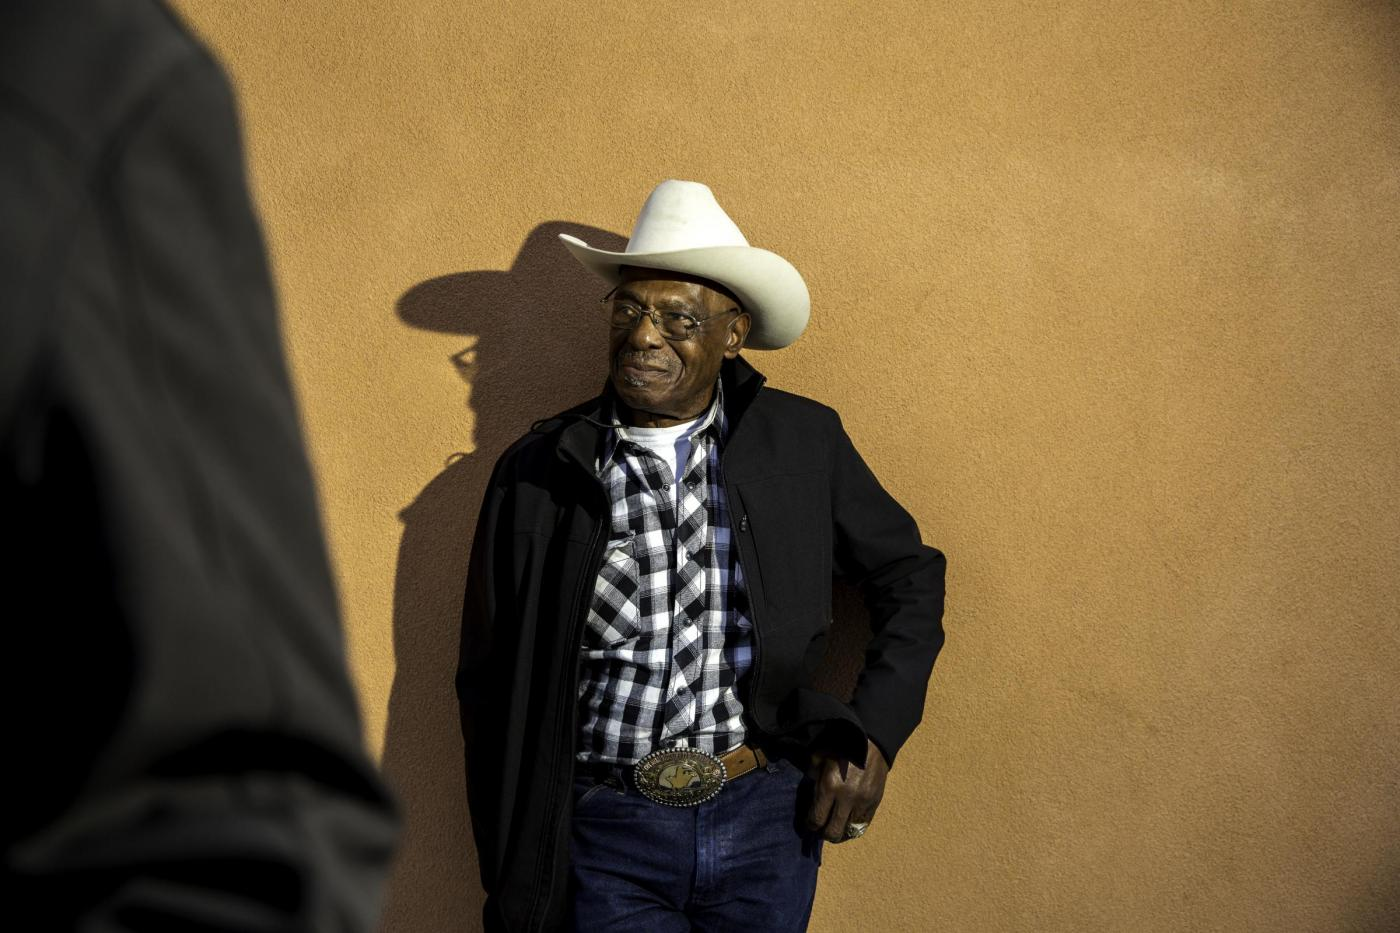 ProRodeo Hall of Famer Myrtis Dightman Sr. was a key figure in this year's National Cowboy Poetry Gathering showcasing the contributions of black cowboys.